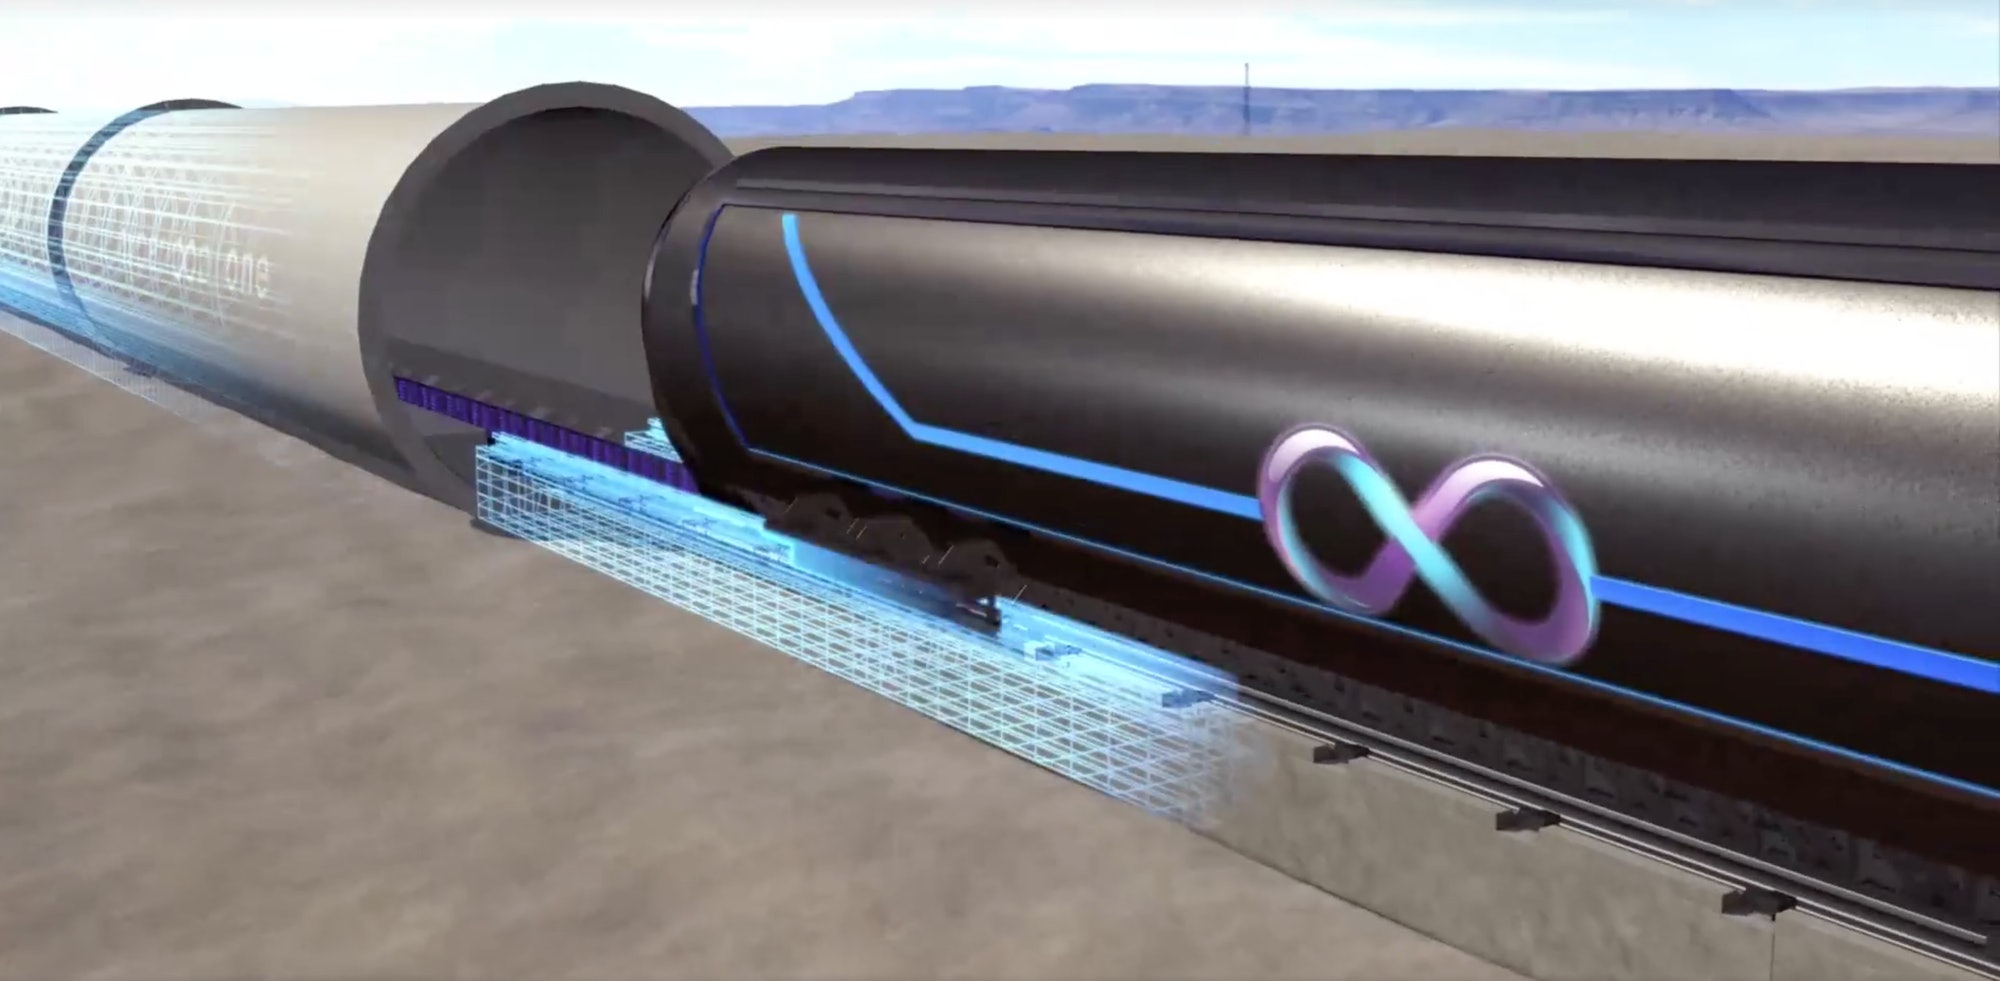 A rendering of what Hyperloop One wants its train-style pod to look like as it travels through a low-pressure tube at speeds of around 700 mph.